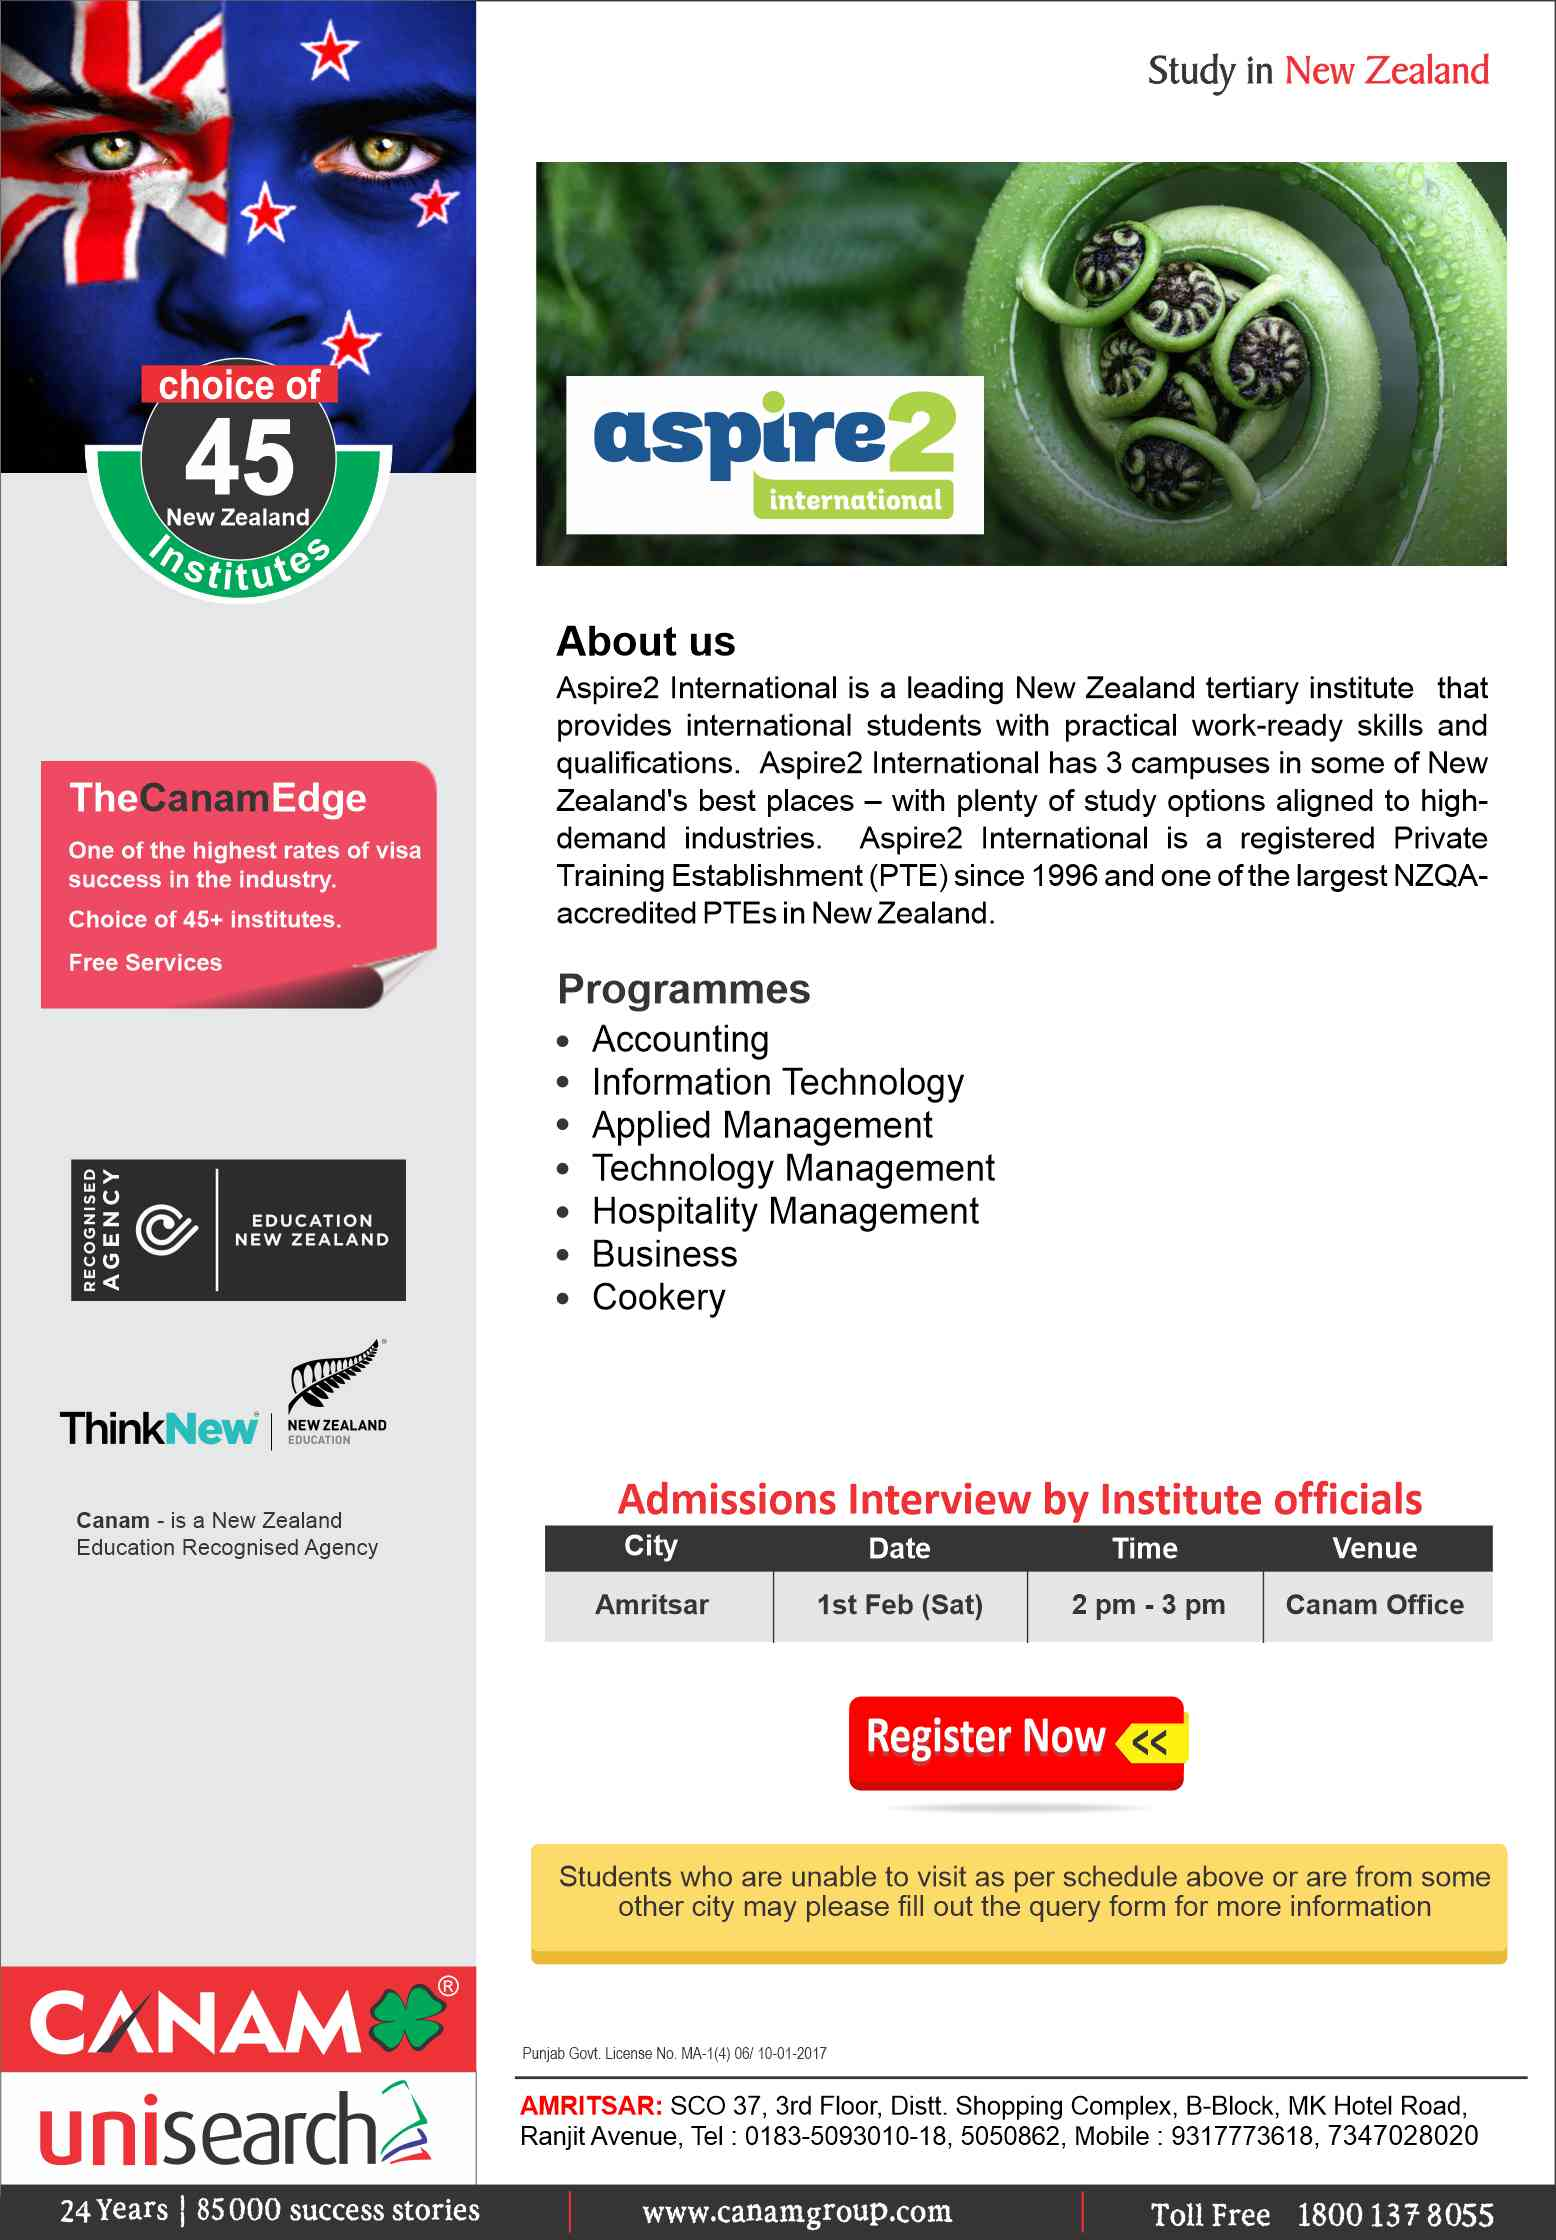 aspire2-international